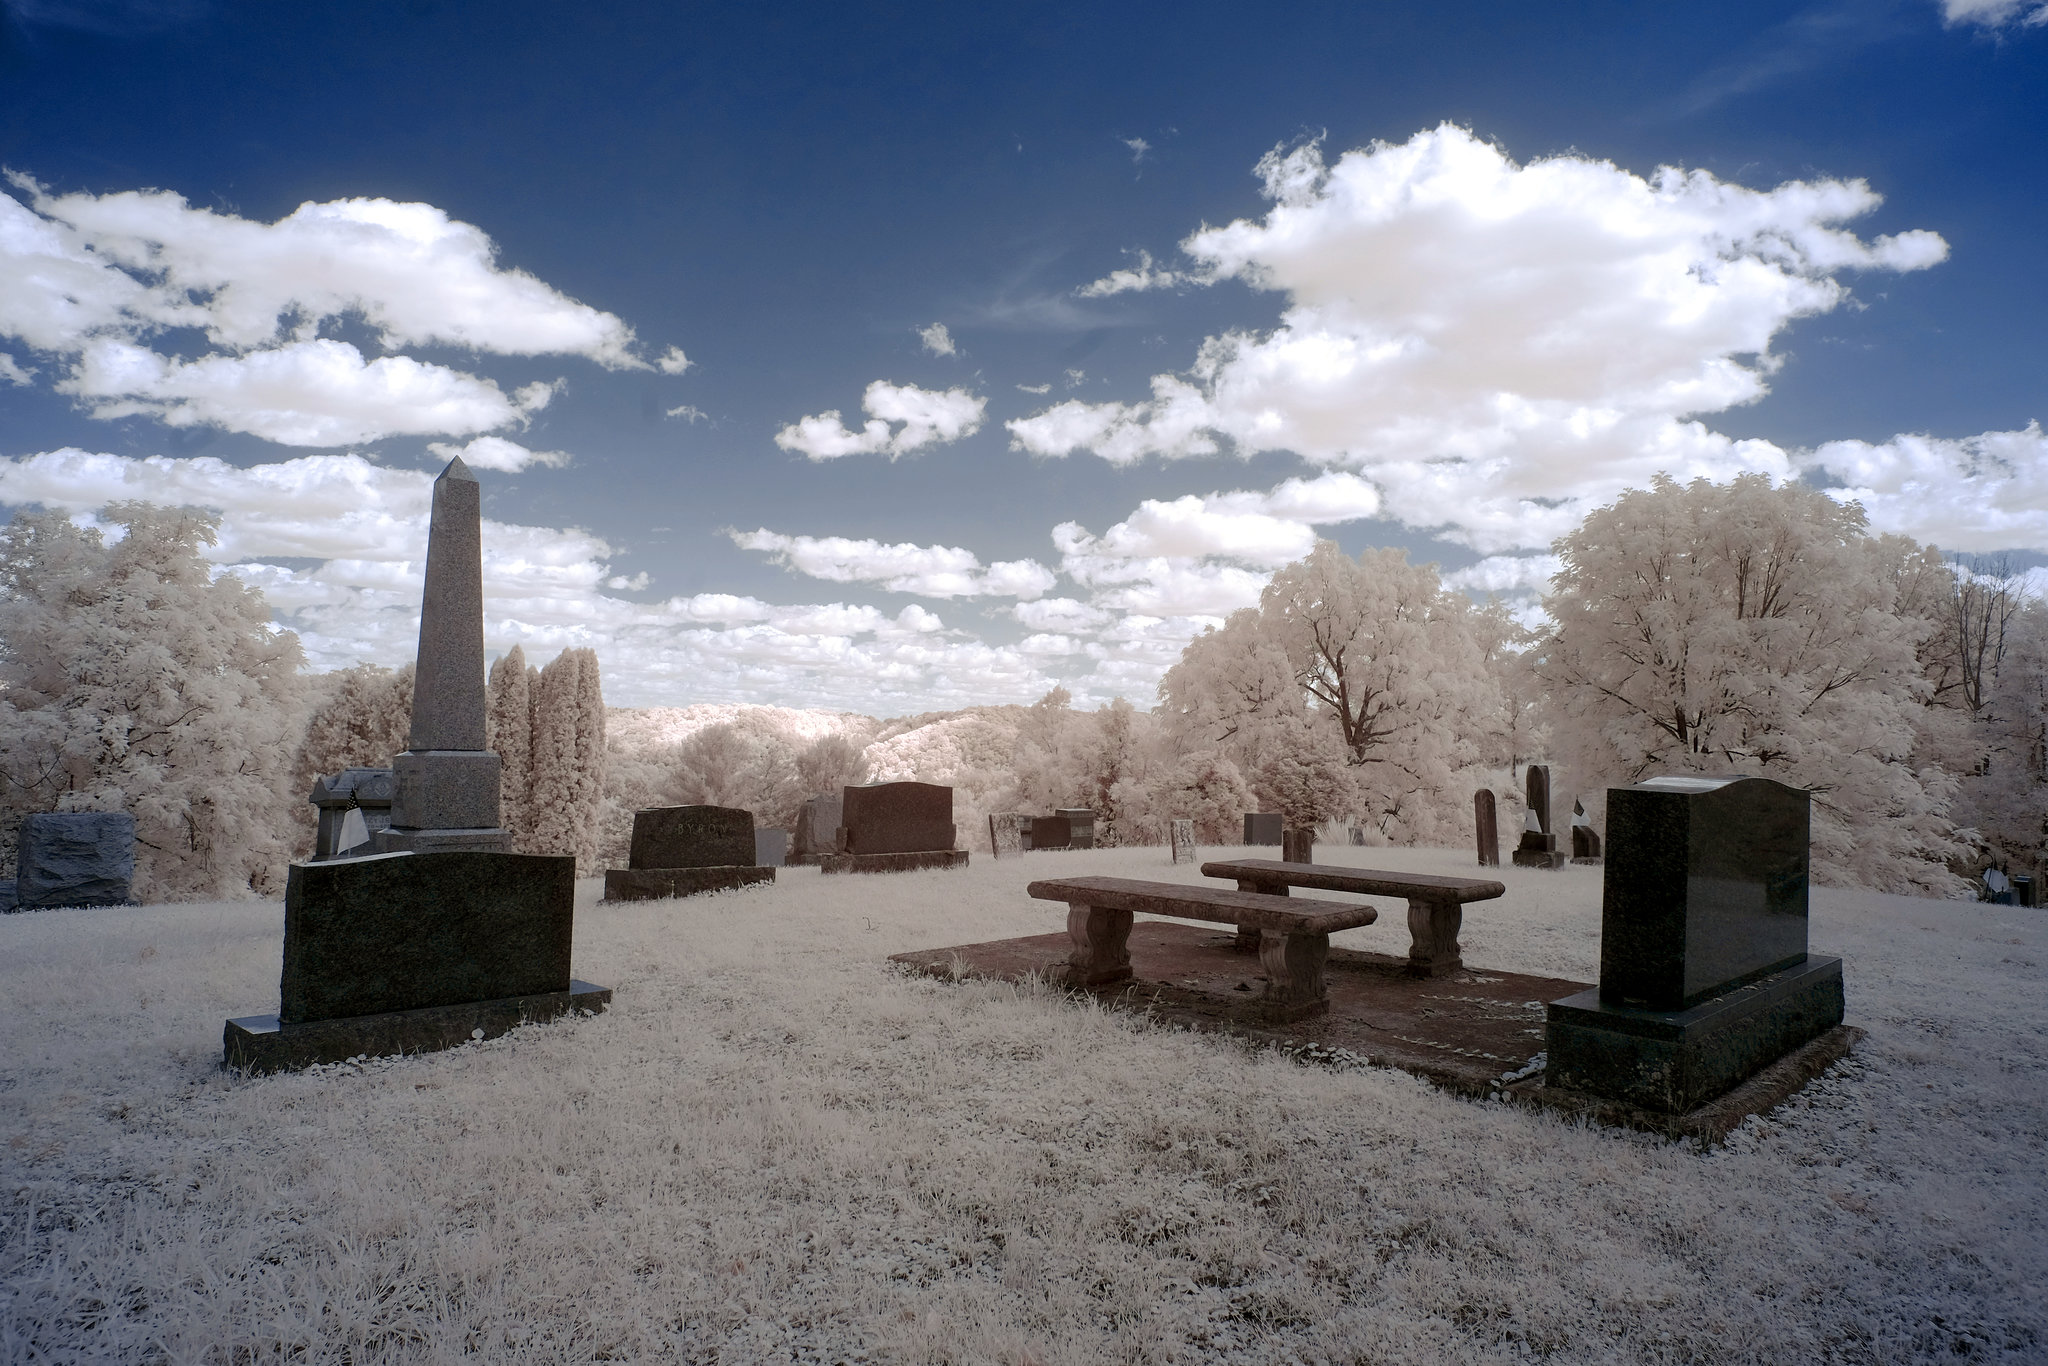 The cemetery is big but the cloud-filled sky is bigger